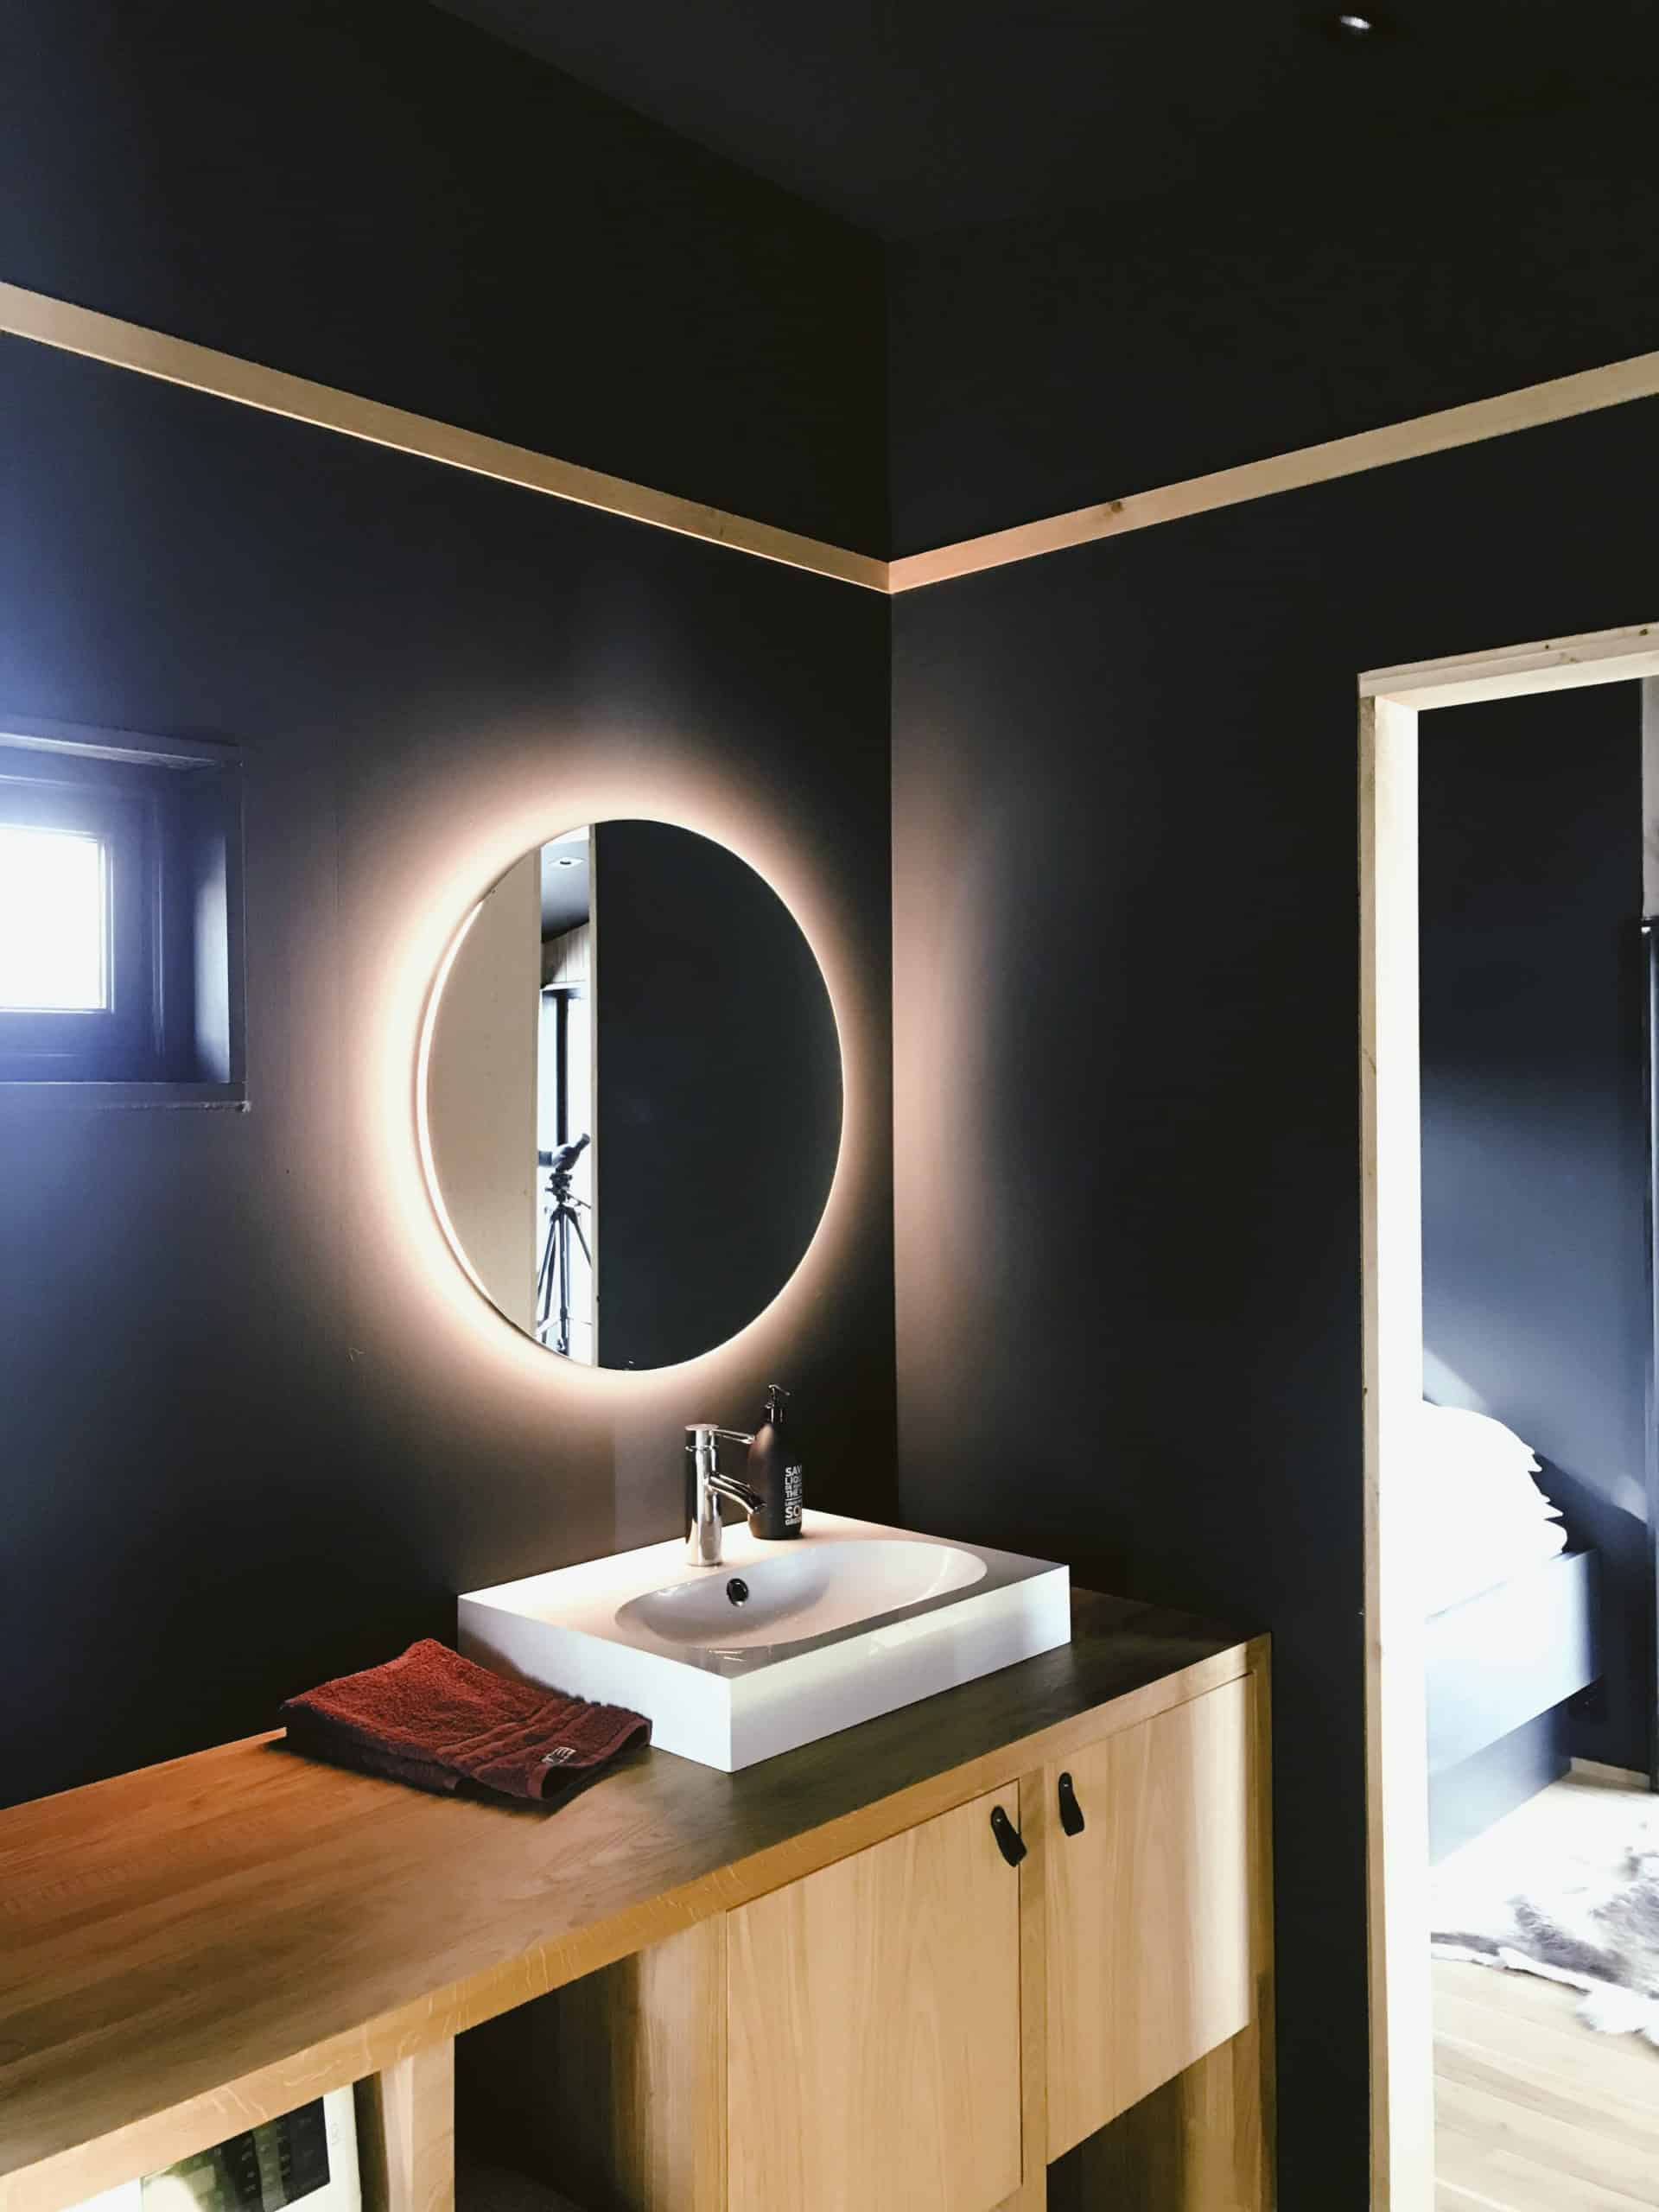 integrated bayhroom ligjts Bathroom trends for 2021 that will take your selfcare routine to the next level!